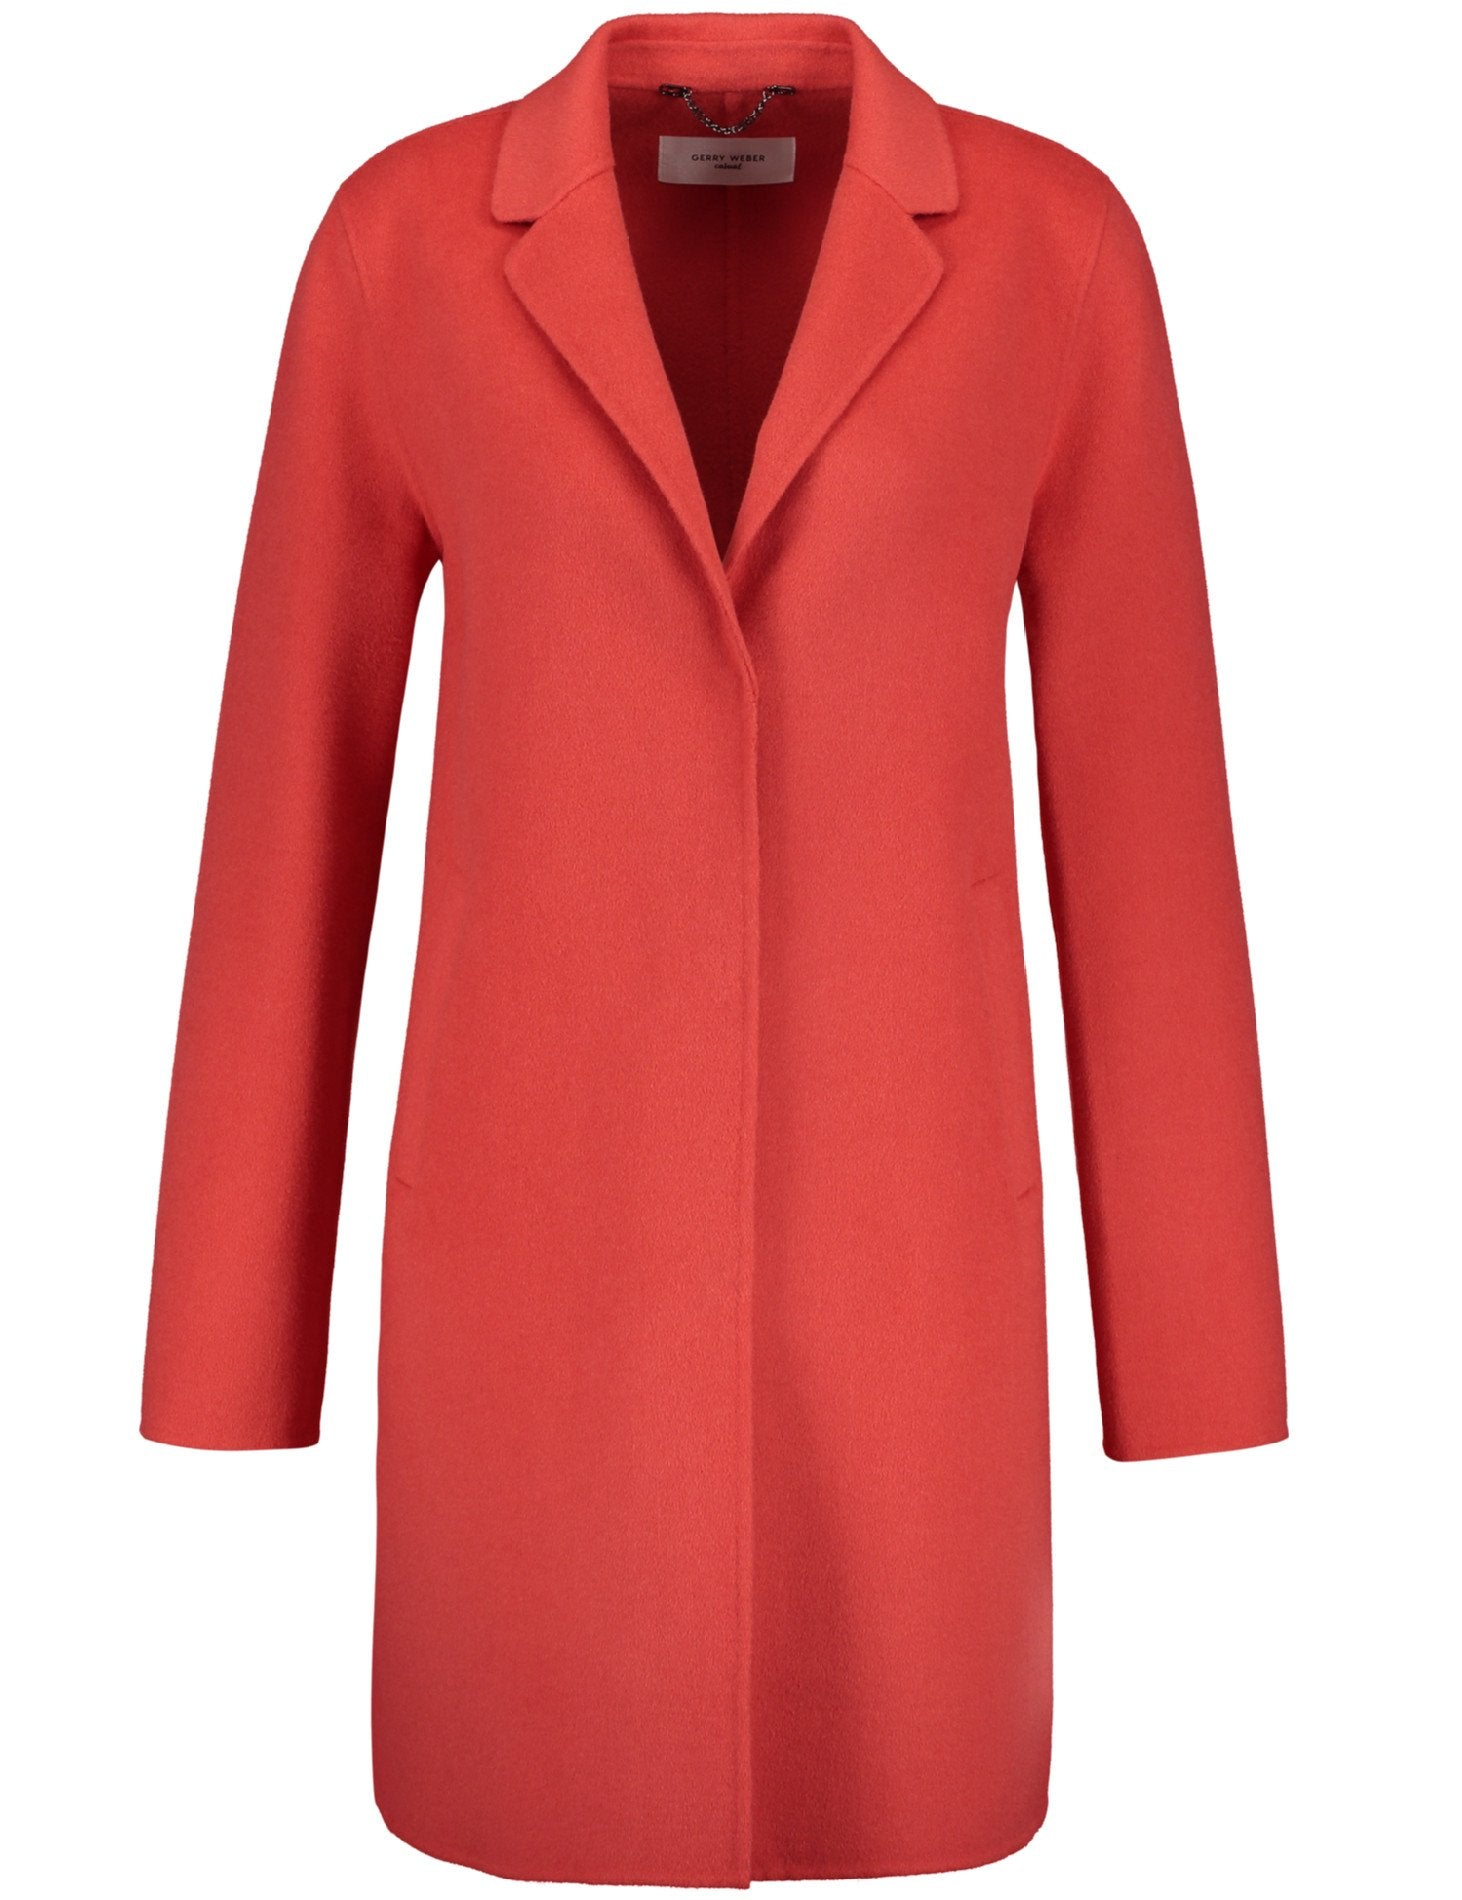 Gerry Weber Wool-rich Coral Coat